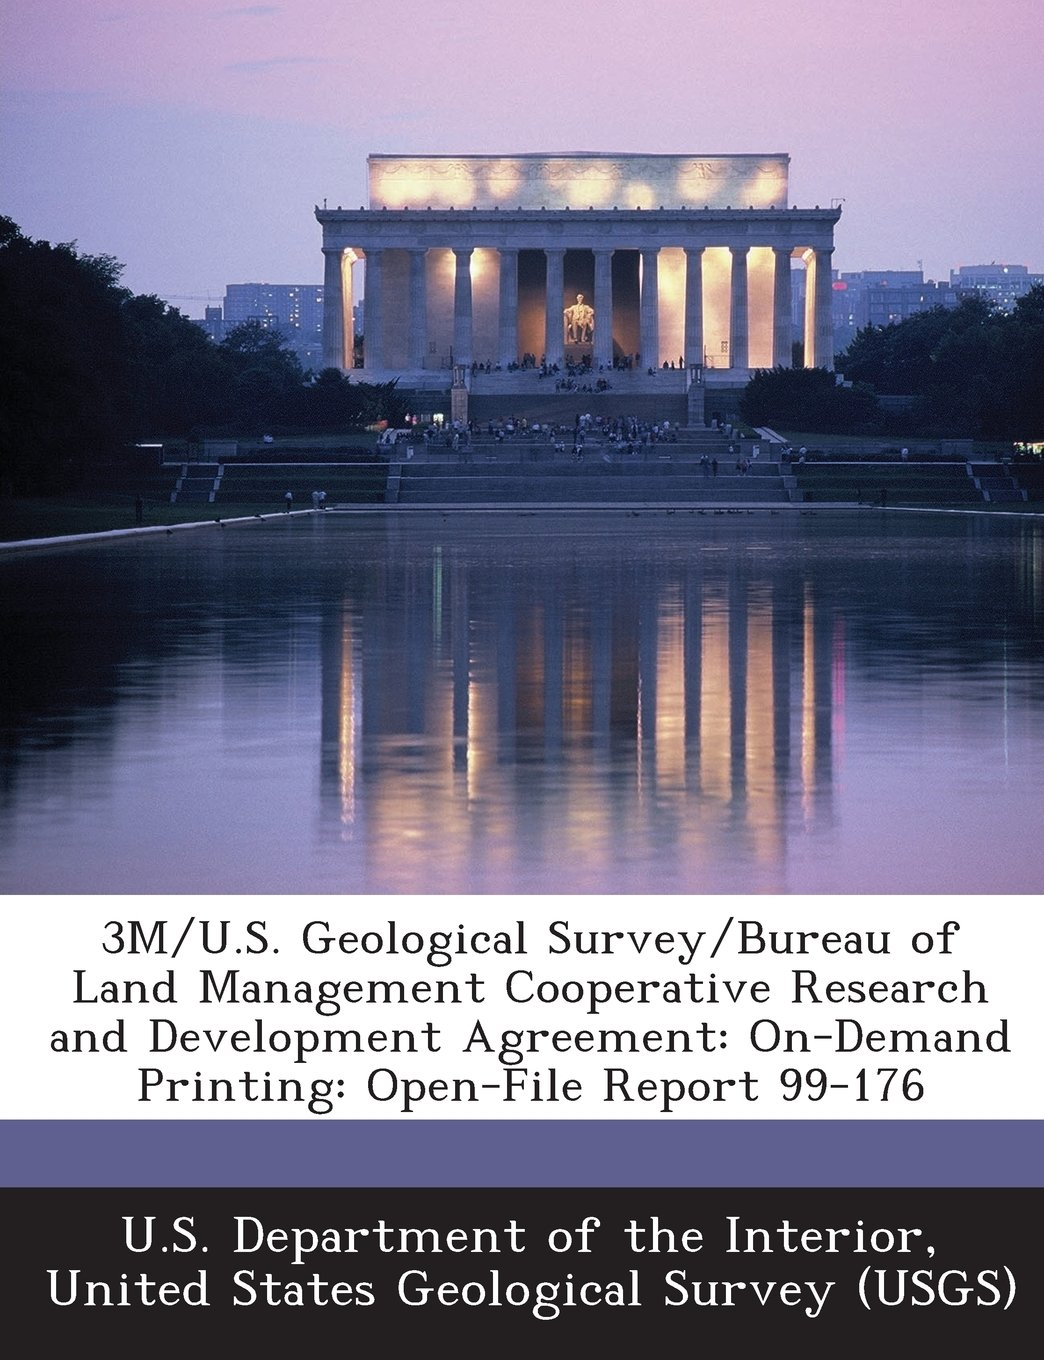 3M/U.S. Geological Survey/Bureau of Land Management Cooperative Research and Development Agreement: On-Demand Printing: Open-File Report 99-176 pdf epub